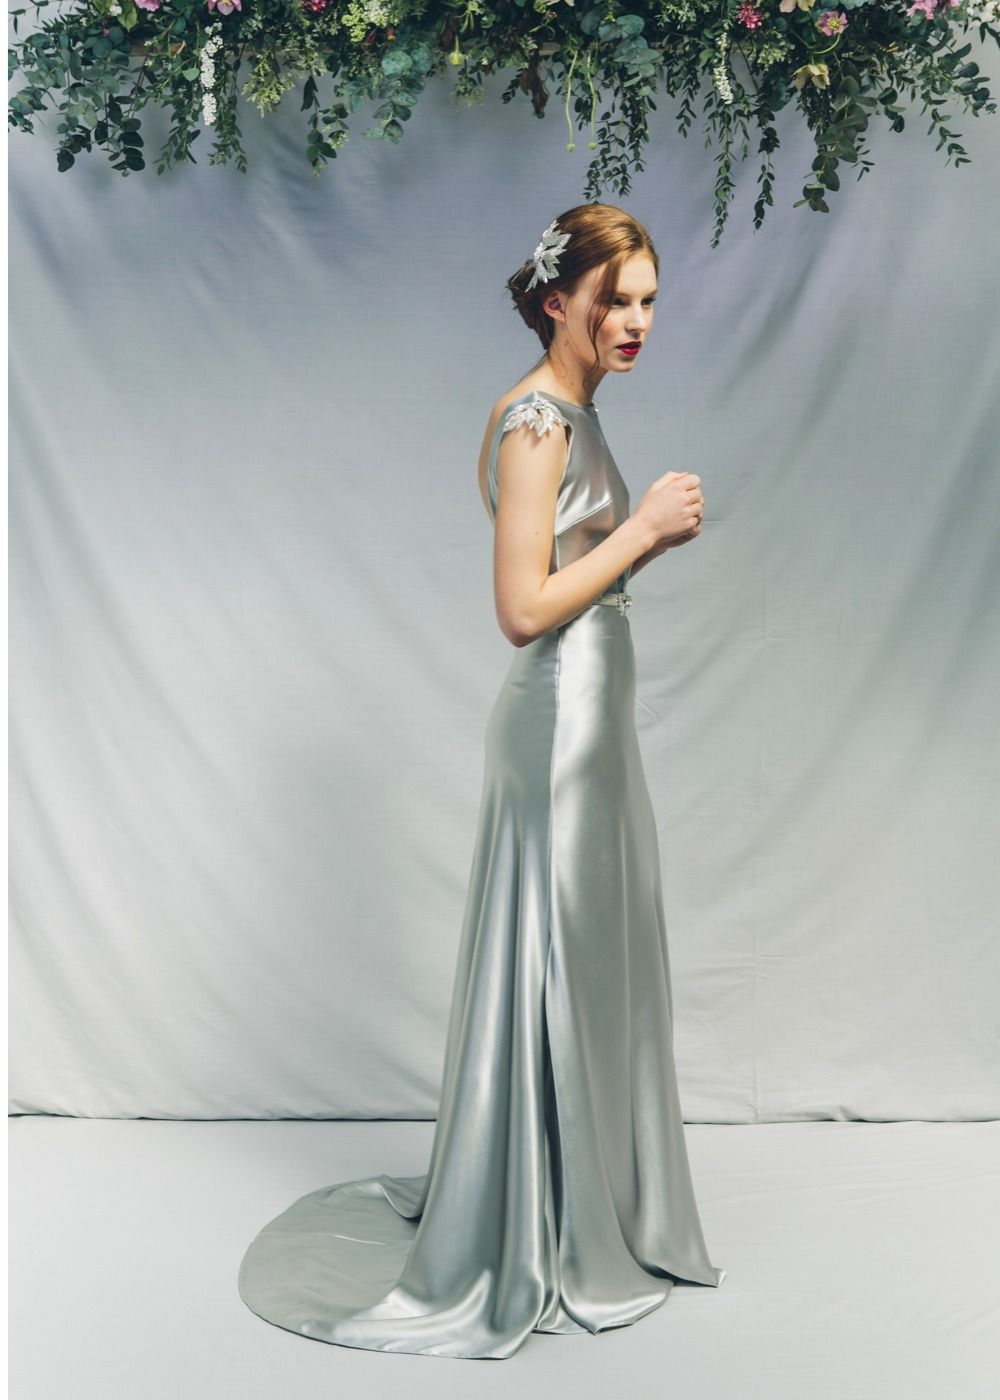 White and silver wedding dresses  colourful  Colourful wedding dresses  Pinterest  Wedding dress